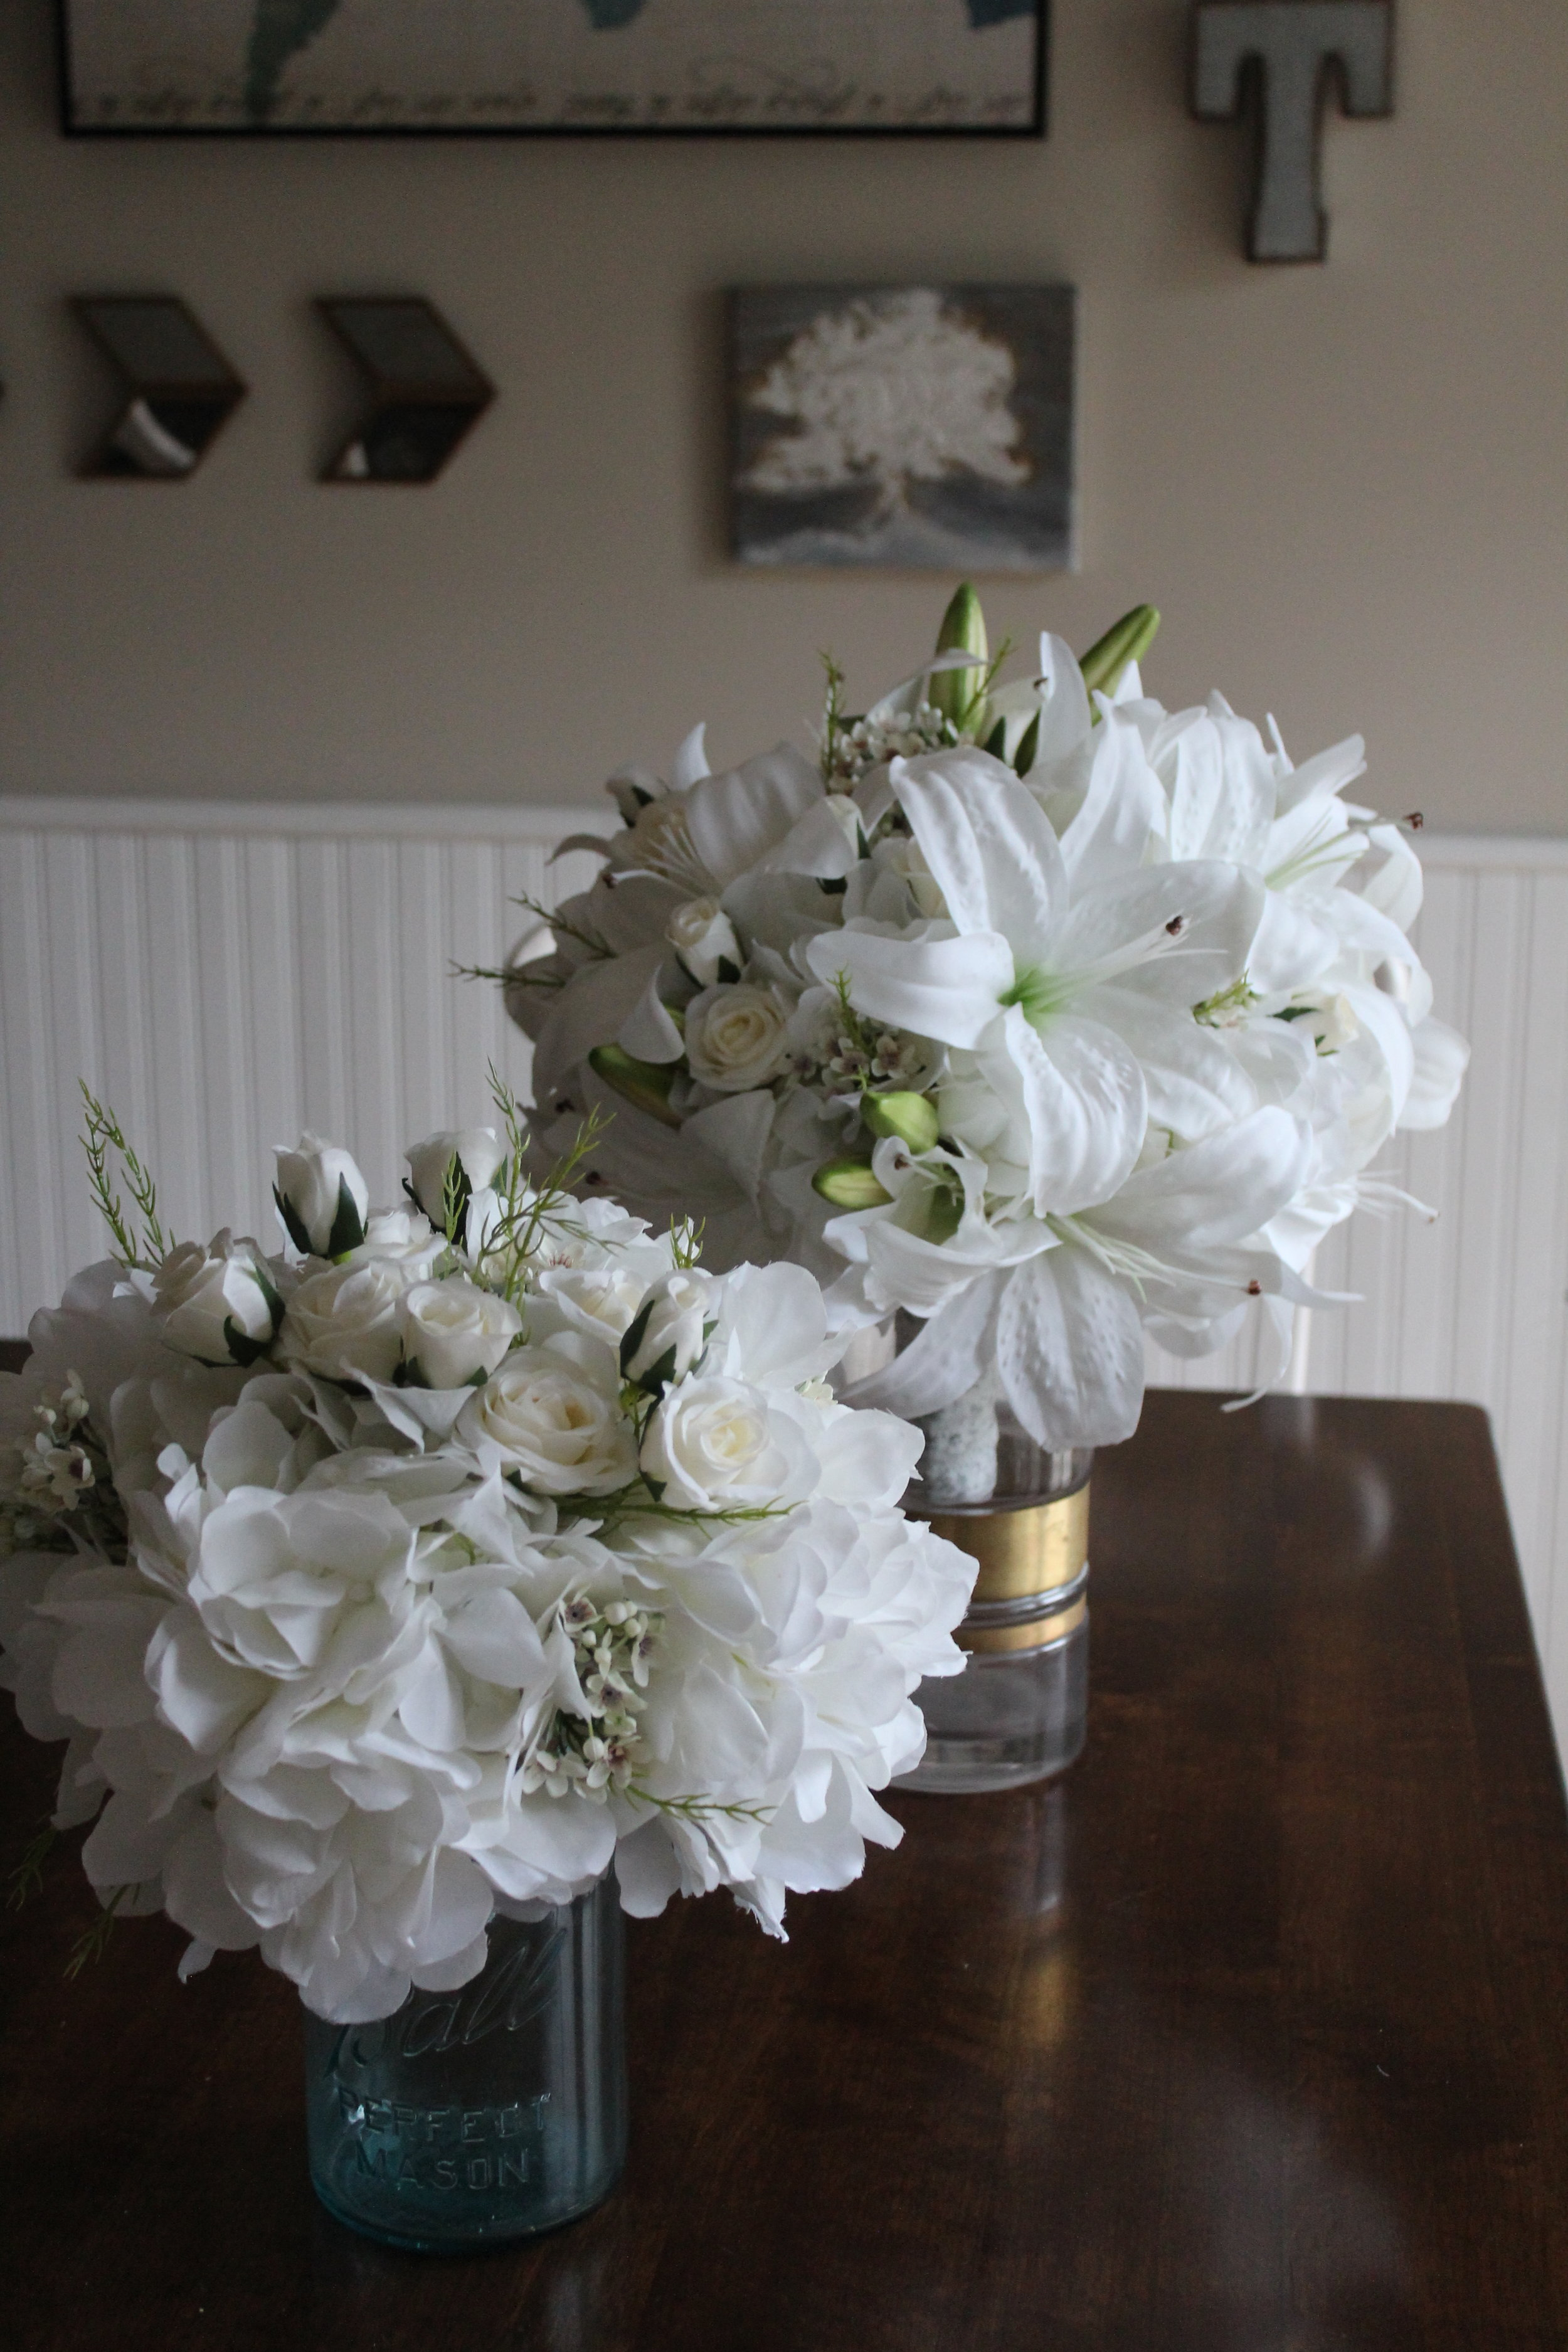 silk-wedding-flowers-reception-centerpieces.jpg